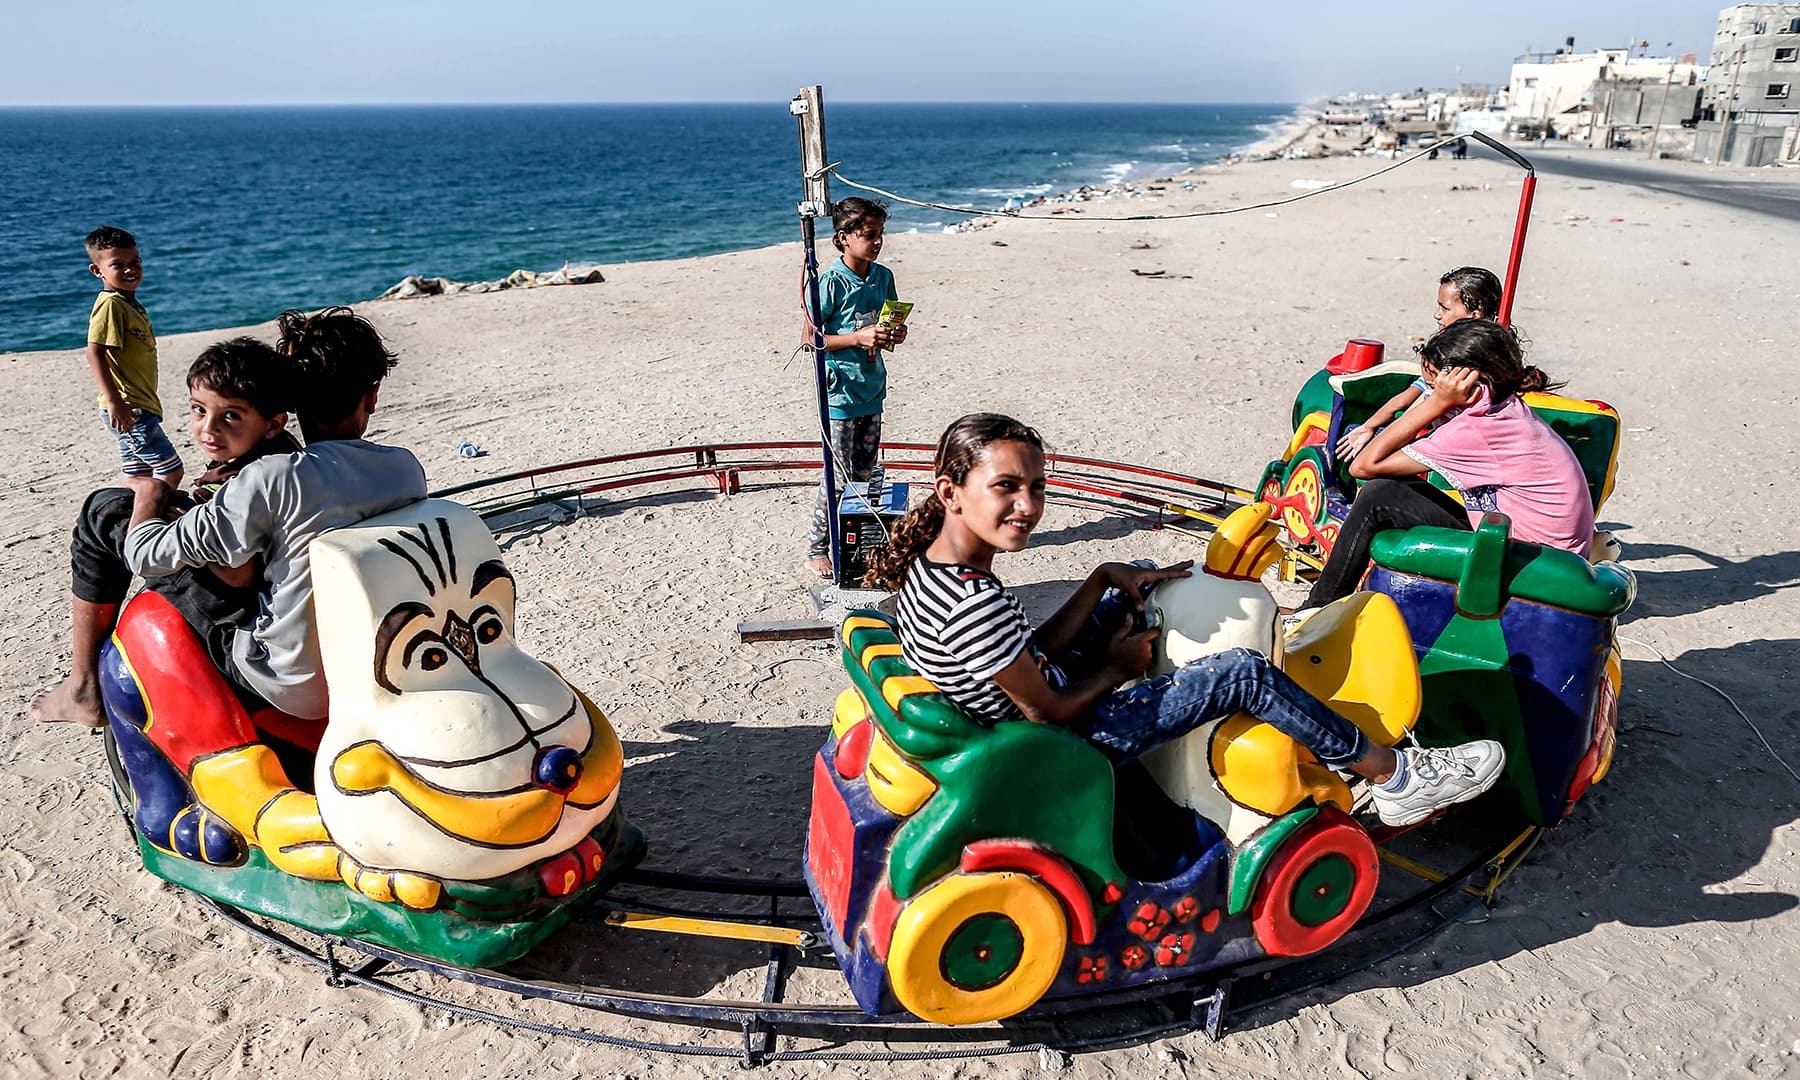 Palestinian children ride on a toy train overlooking the Mediterranean, while celebrating during the third day of Eidul Azha in the Deir al-Balah refugee camp in the central Gaza Strip on Tuesday. — AFP